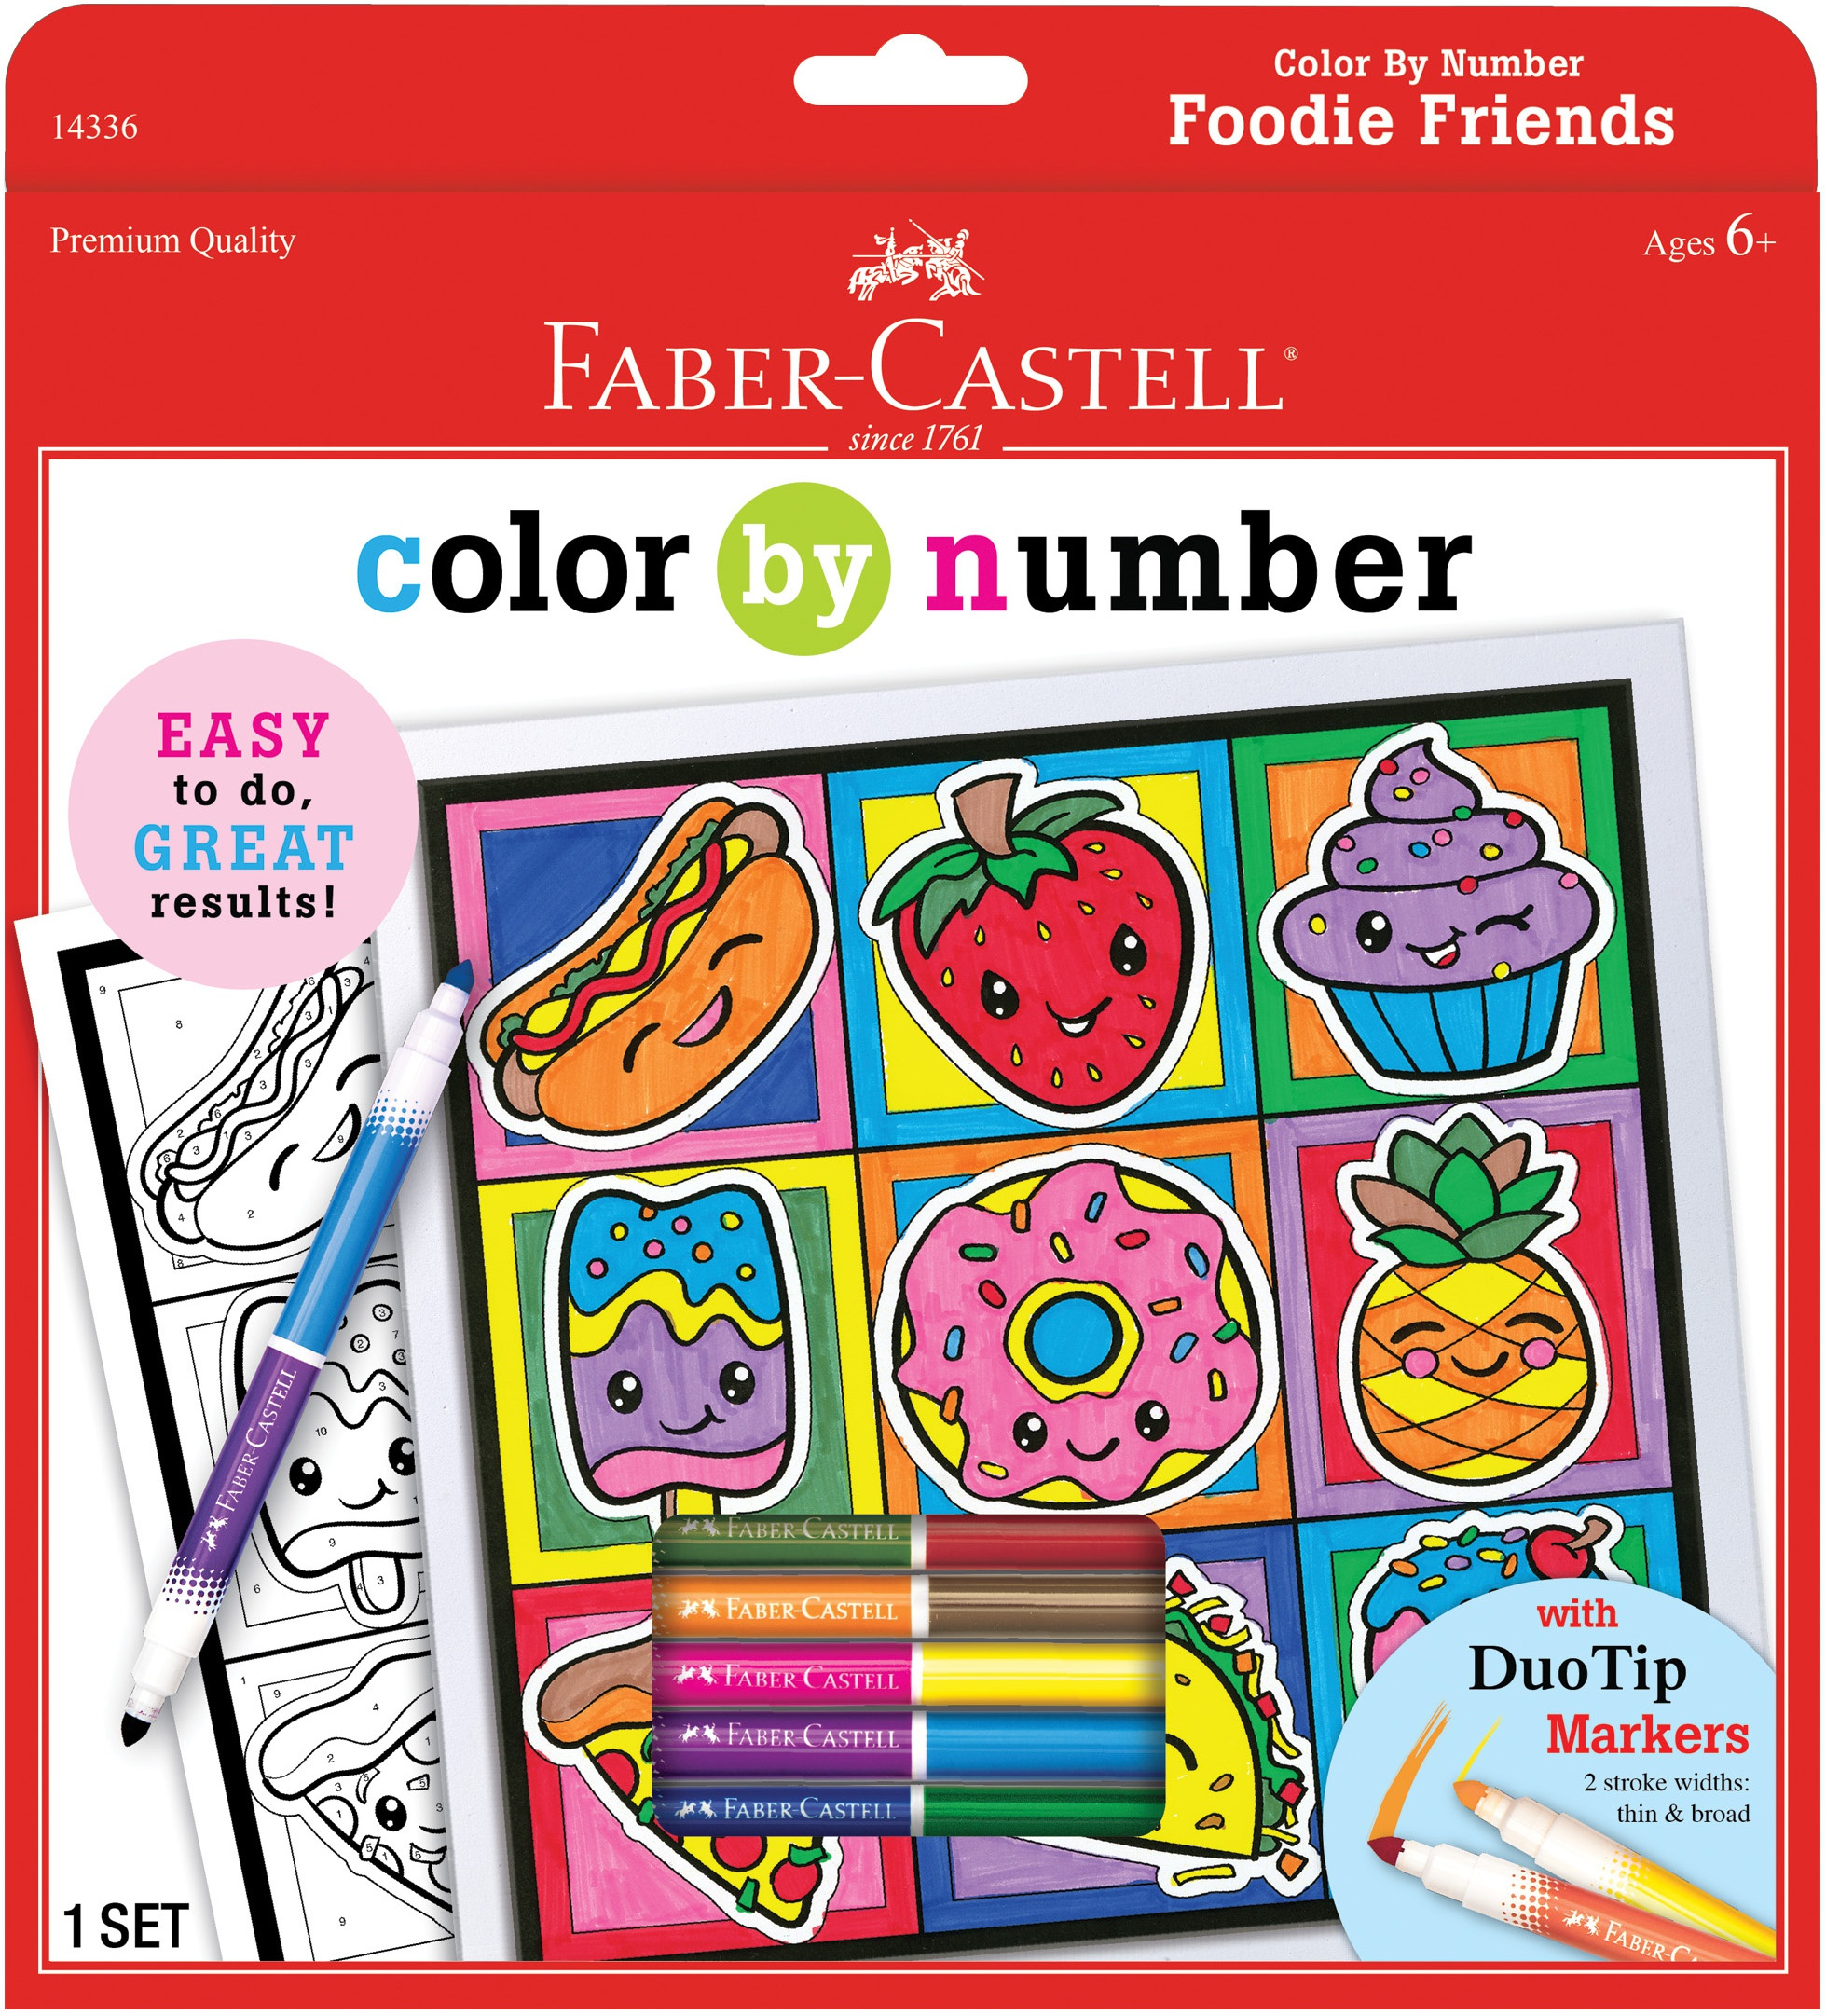 Color By Number Kit 9X9-Foodie Friends